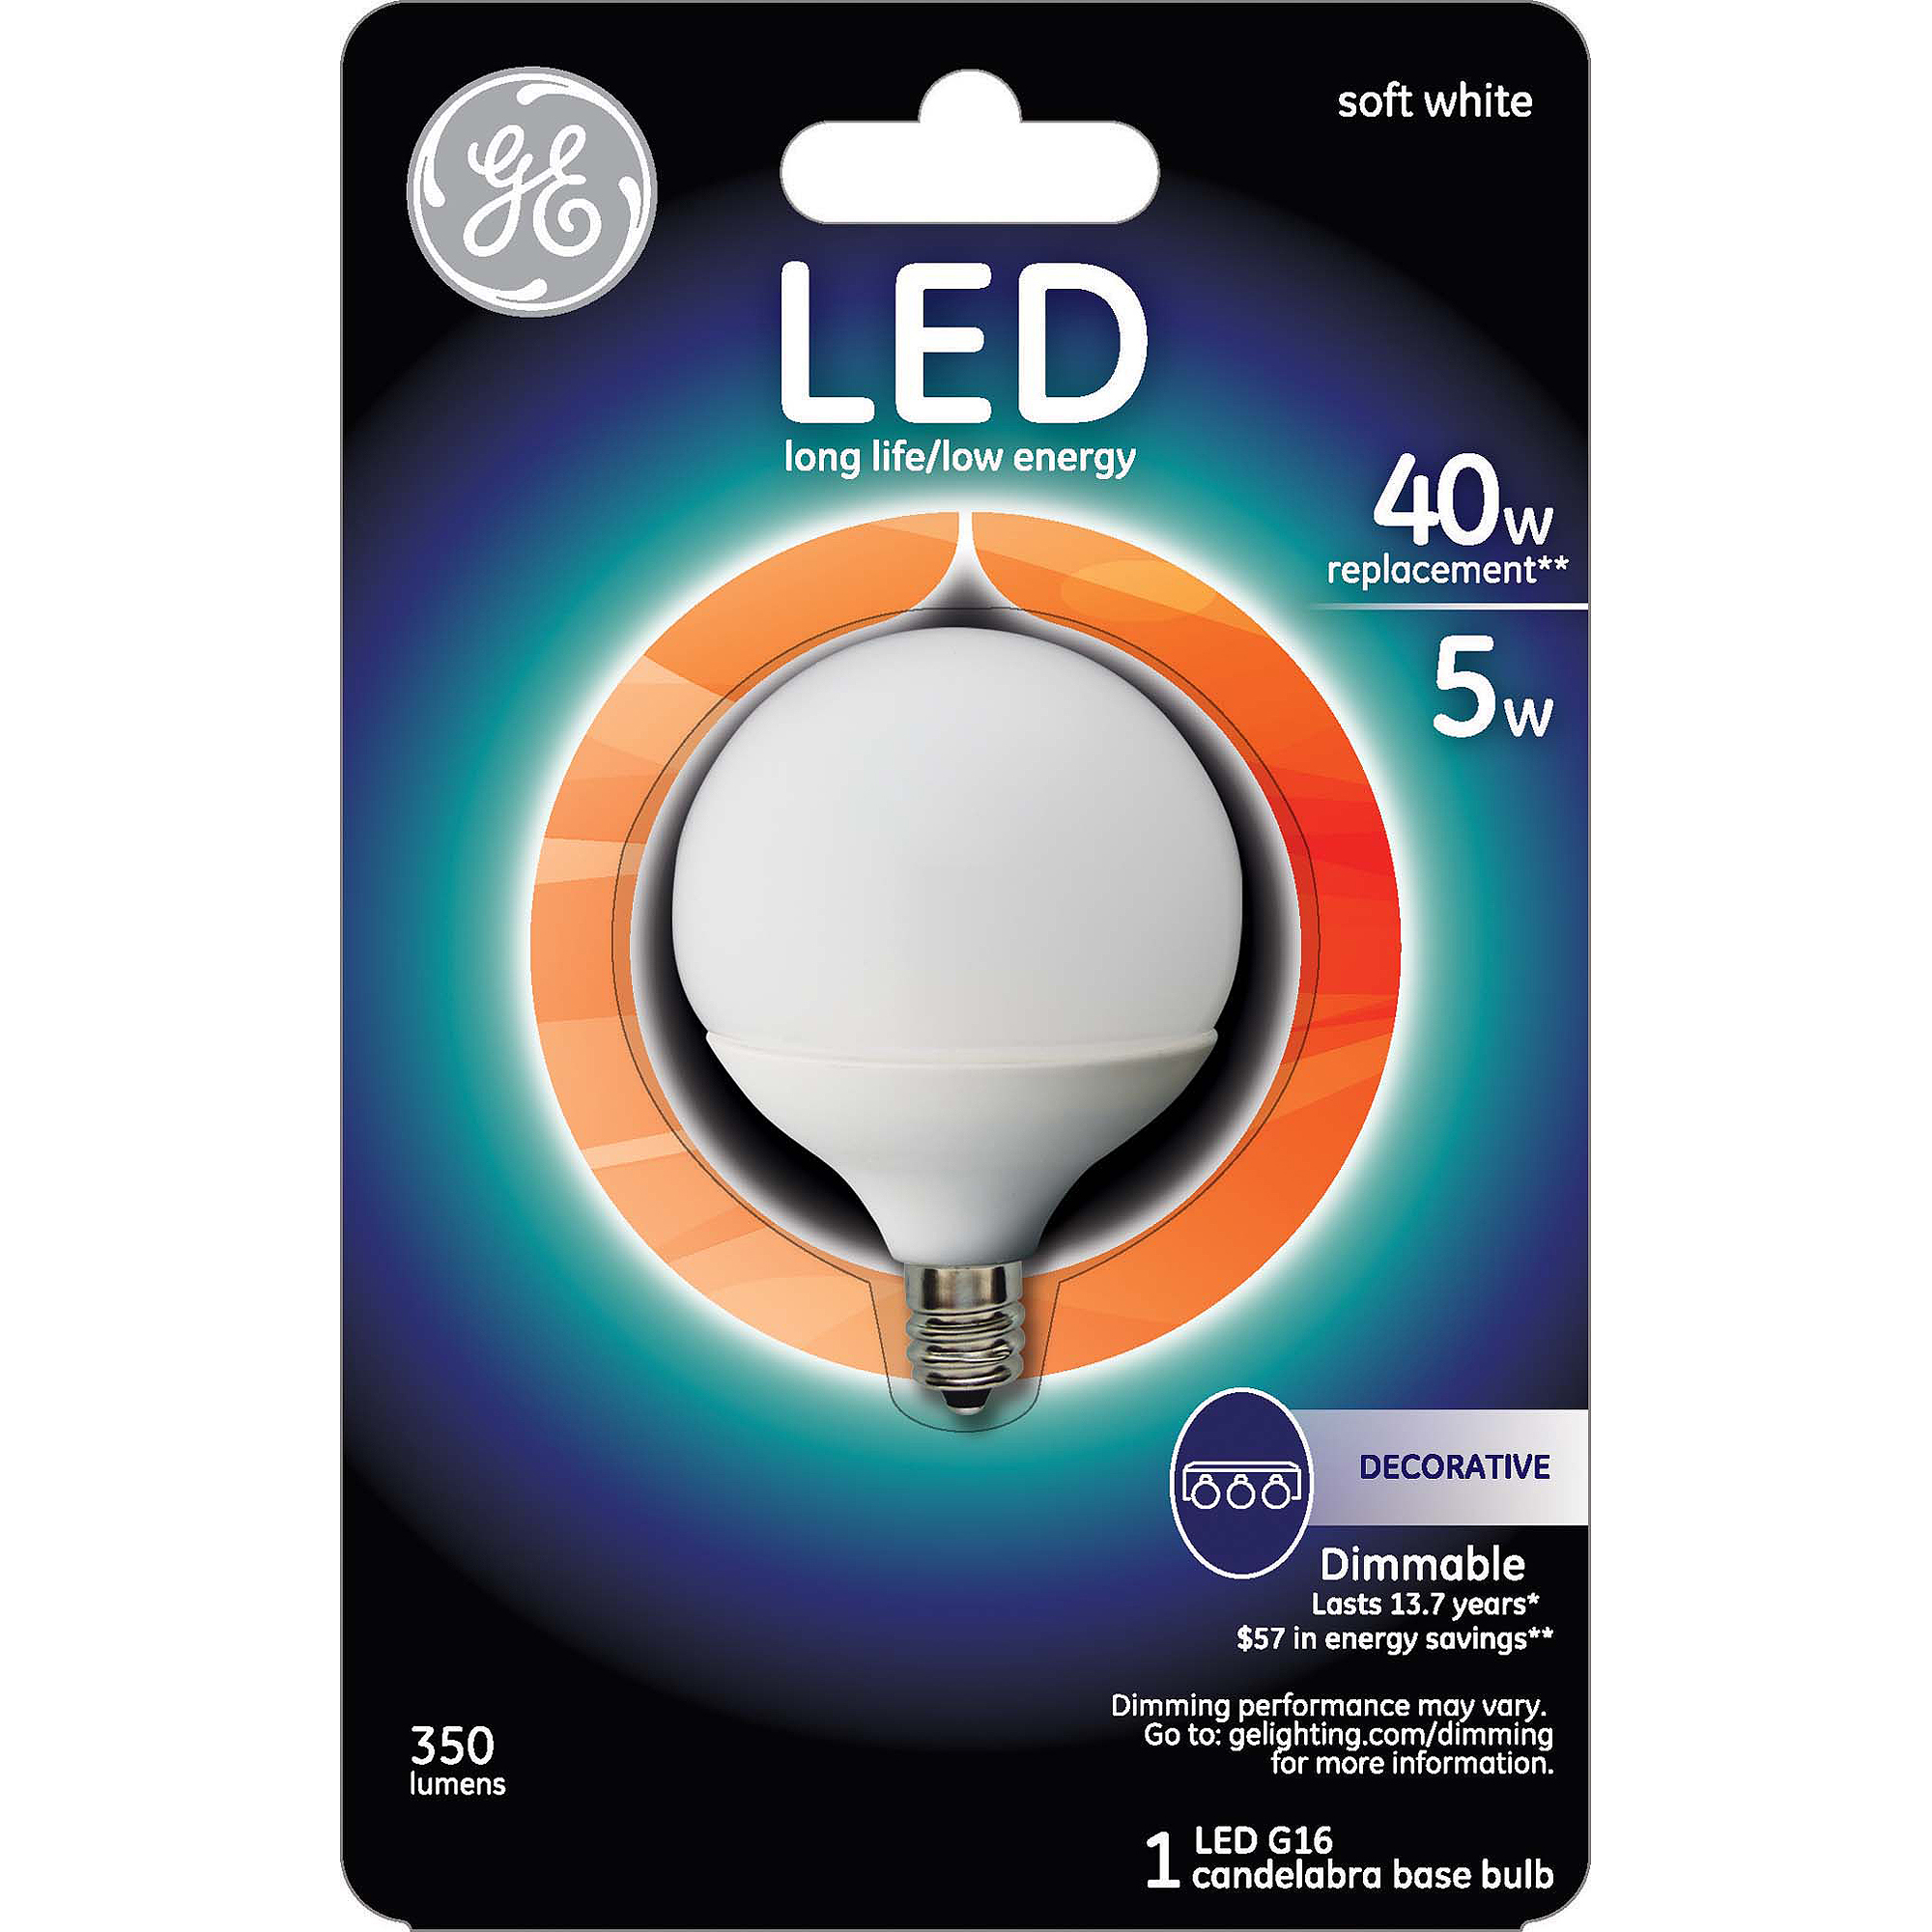 GE LED 5W Small Globe Soft White Light Bulb